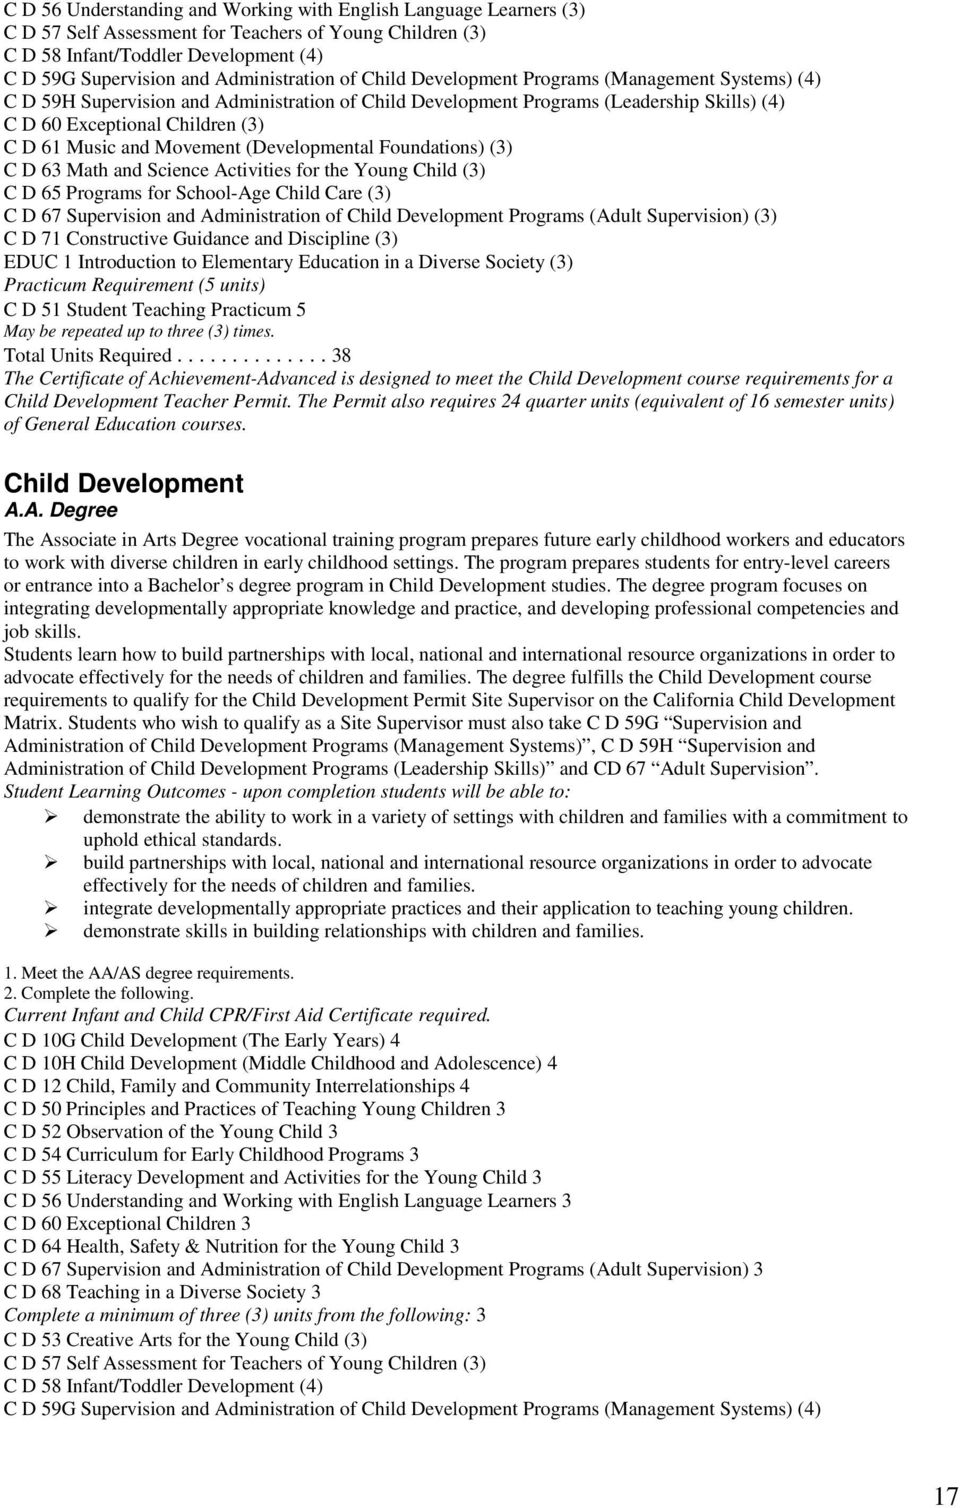 61 Music and Movement (Developmental Foundations) (3) C D 63 Math and Science Activities for the Young Child (3) C D 65 Programs for School-Age Child Care (3) C D 67 Supervision and Administration of